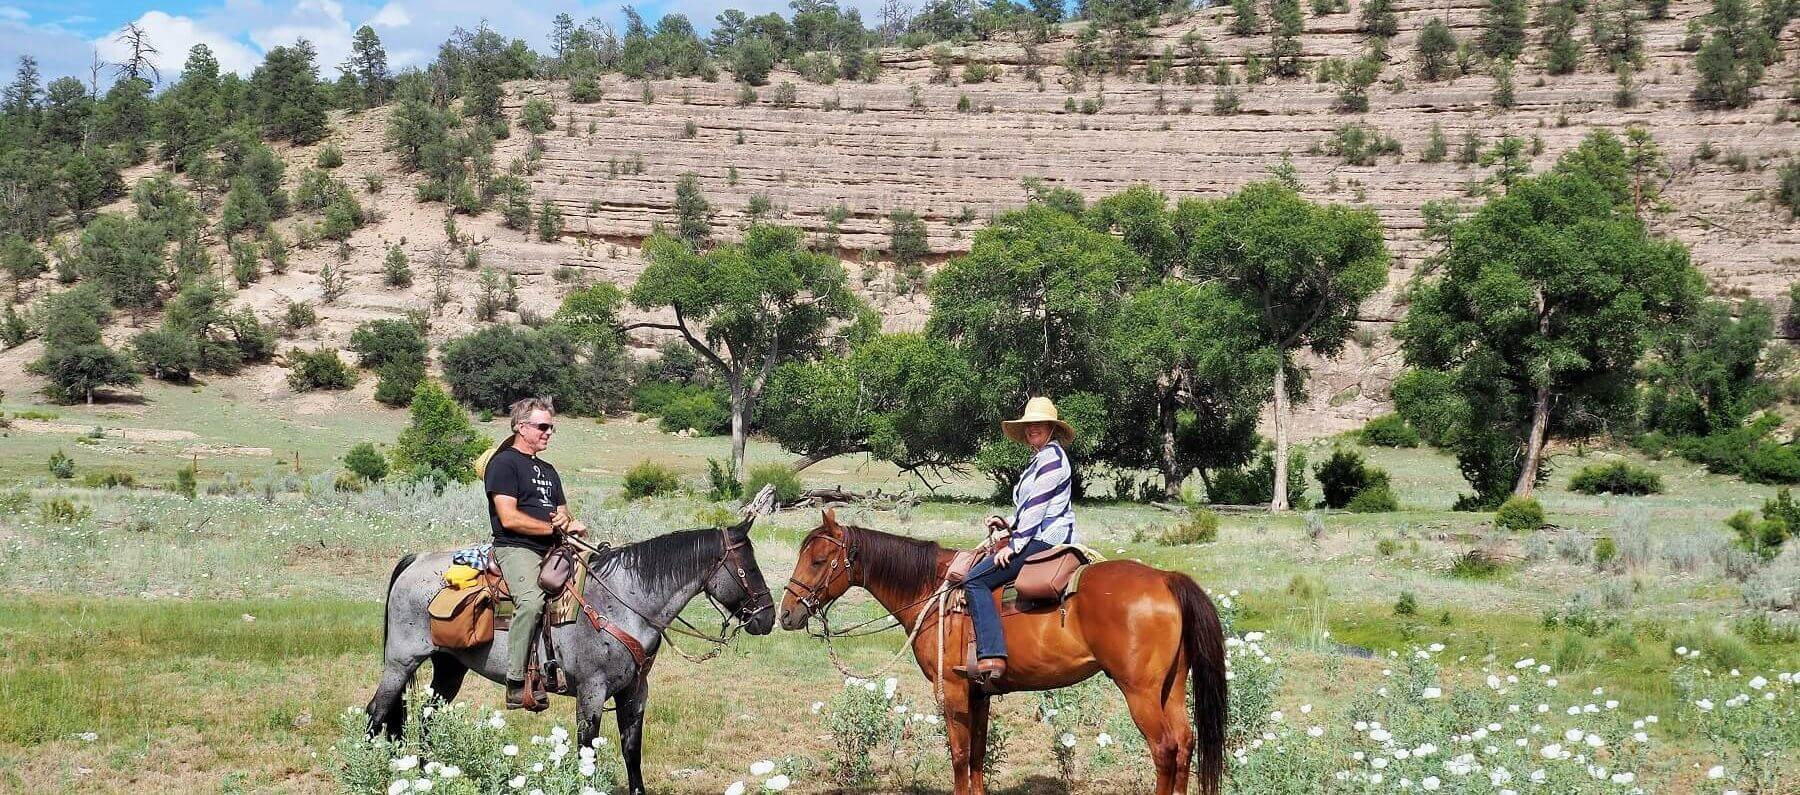 2 horses and people on a New Mexico ranch vacation